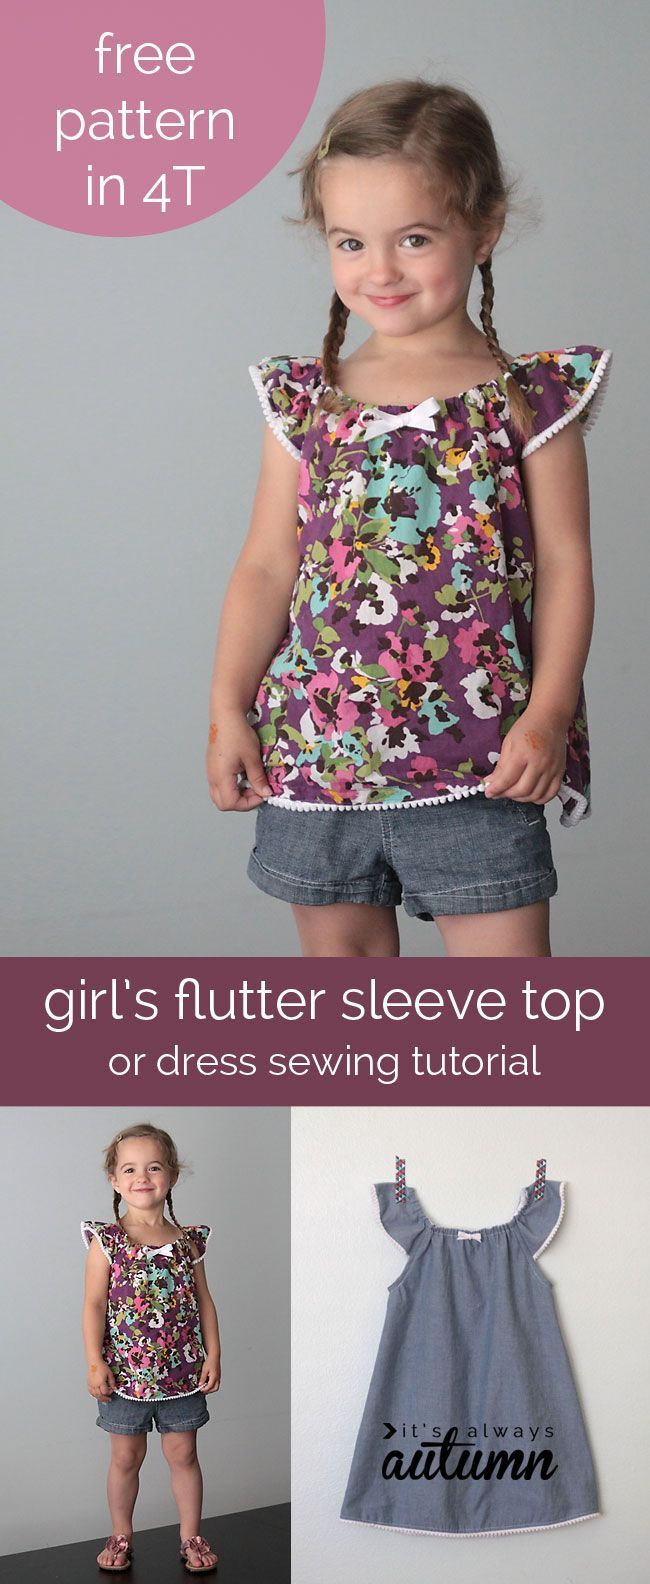 cutest little girl's shirt ever! free pattern for the top or for a dress and easy sewing tutorial.